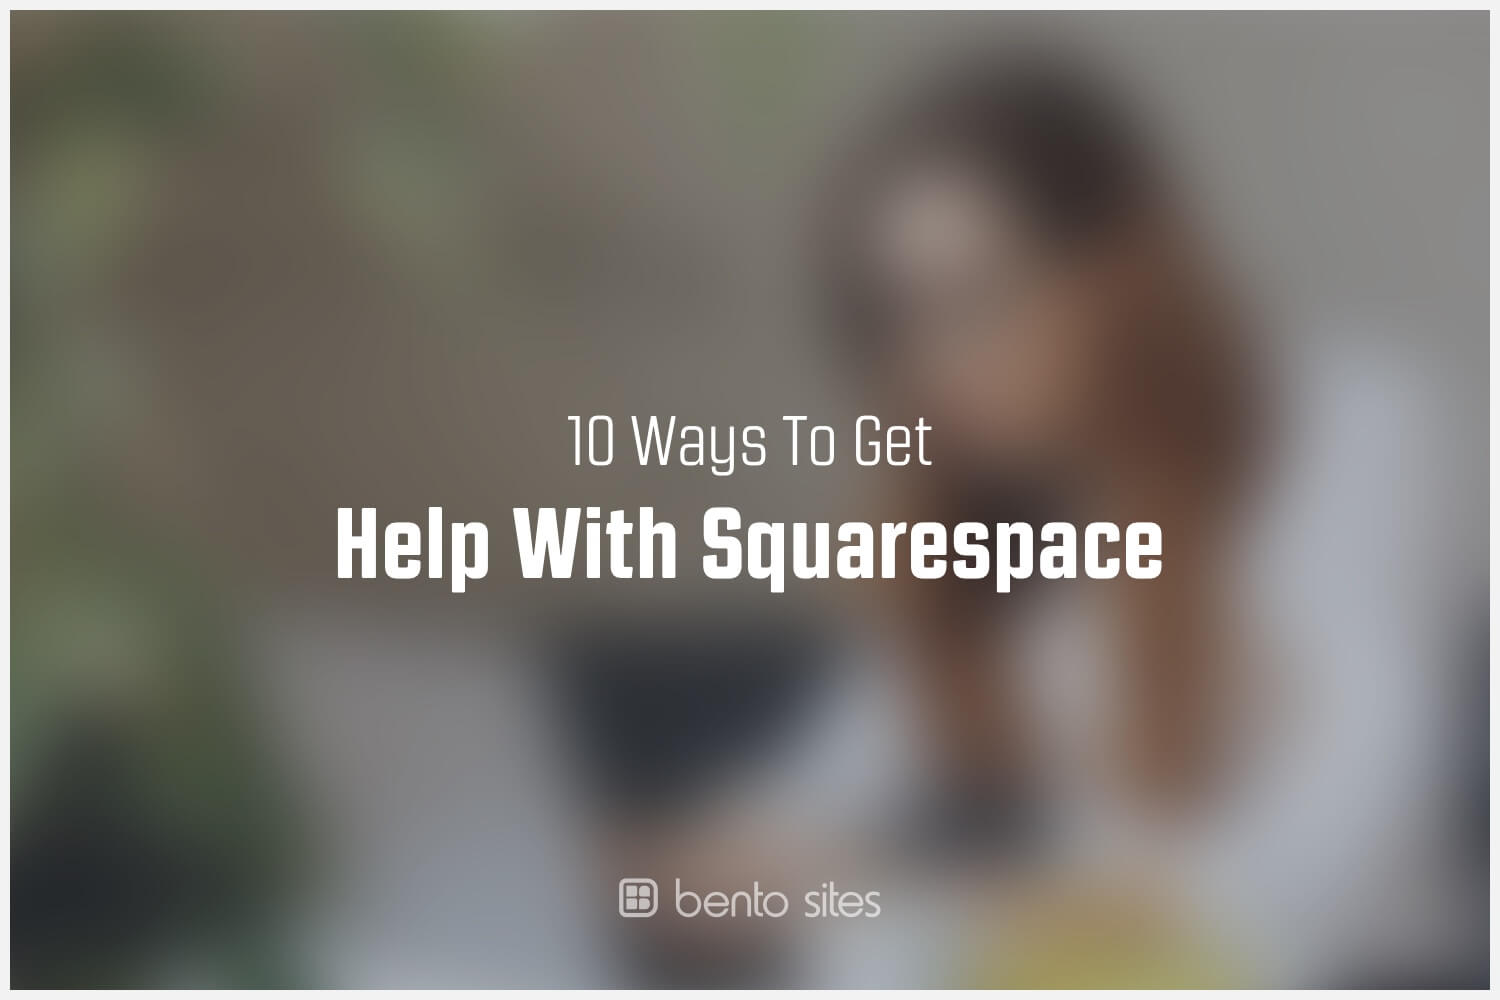 how-to-get-help-with-squarespace